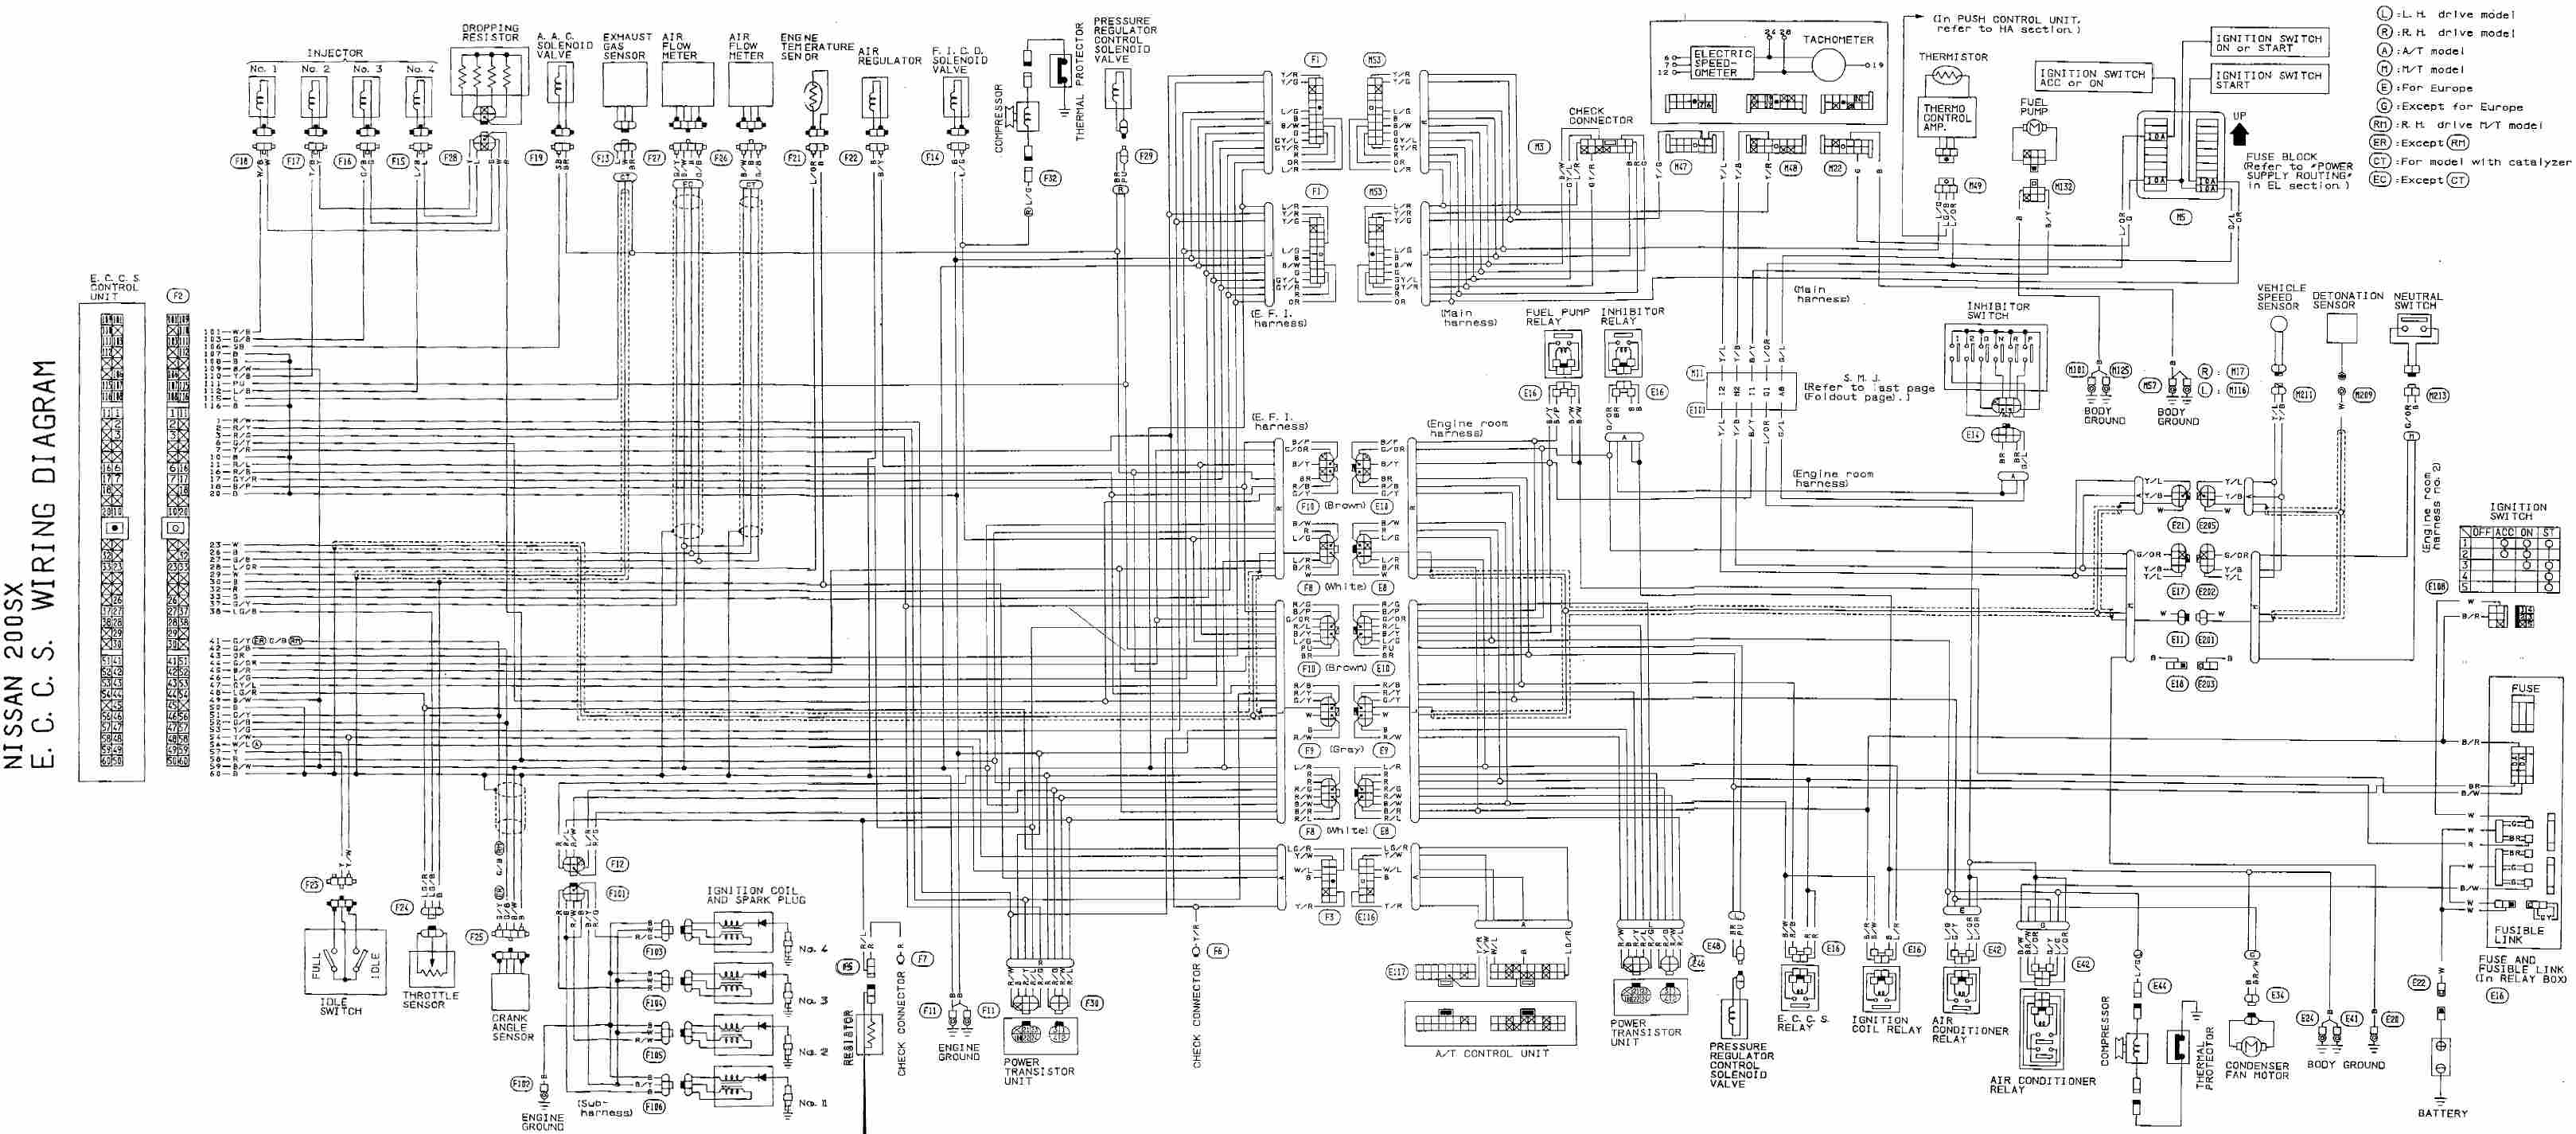 complete eccs wiring diagram of nissan 200x?t\=1508500919 300zx wiring diagram 300zx engine wiring diagram \u2022 wiring diagrams s14 sr20det wiring diagram at reclaimingppi.co